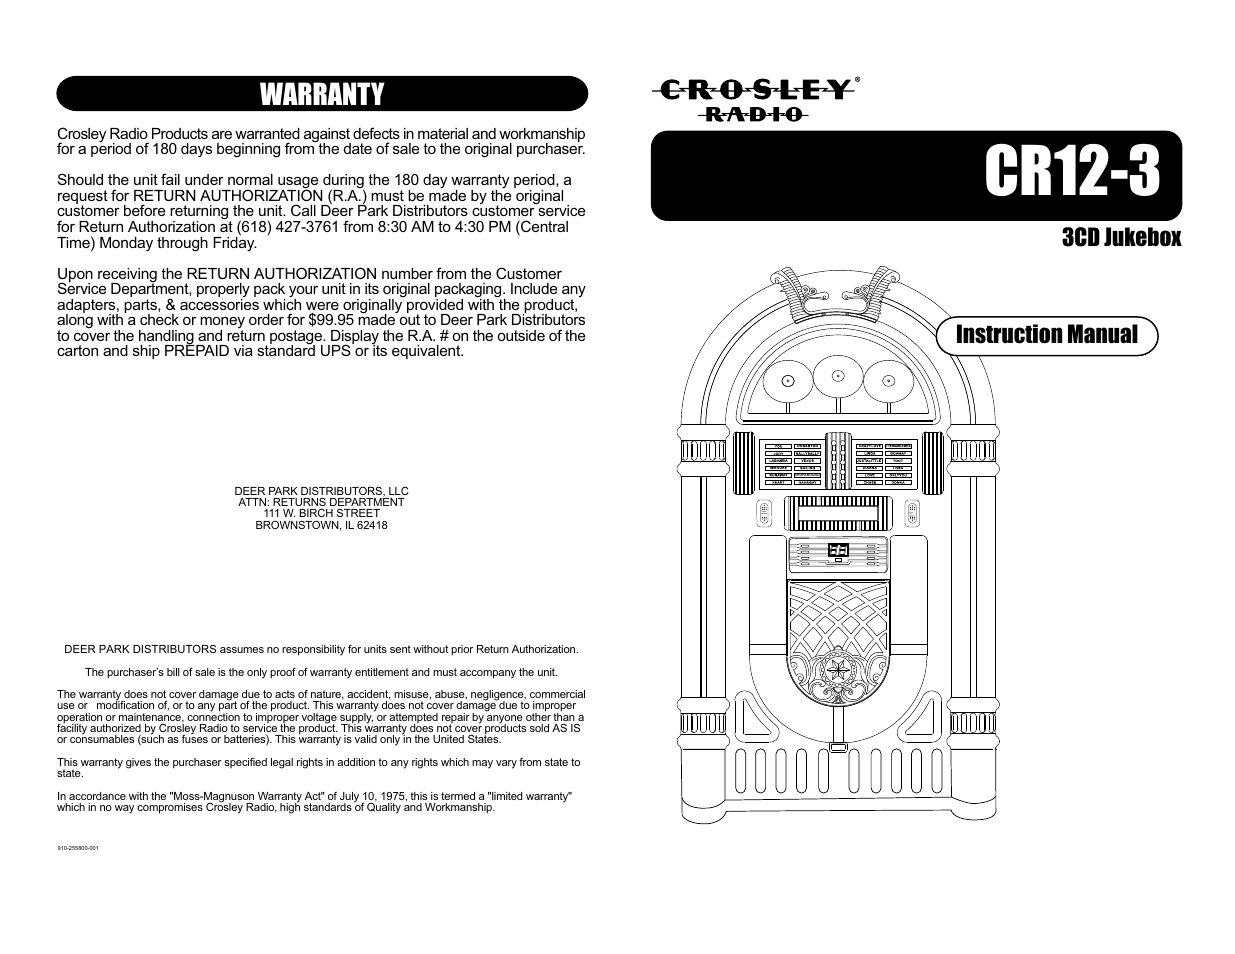 Crosley Radio Crosley Full Size Jukebox CR12-3 User Manual